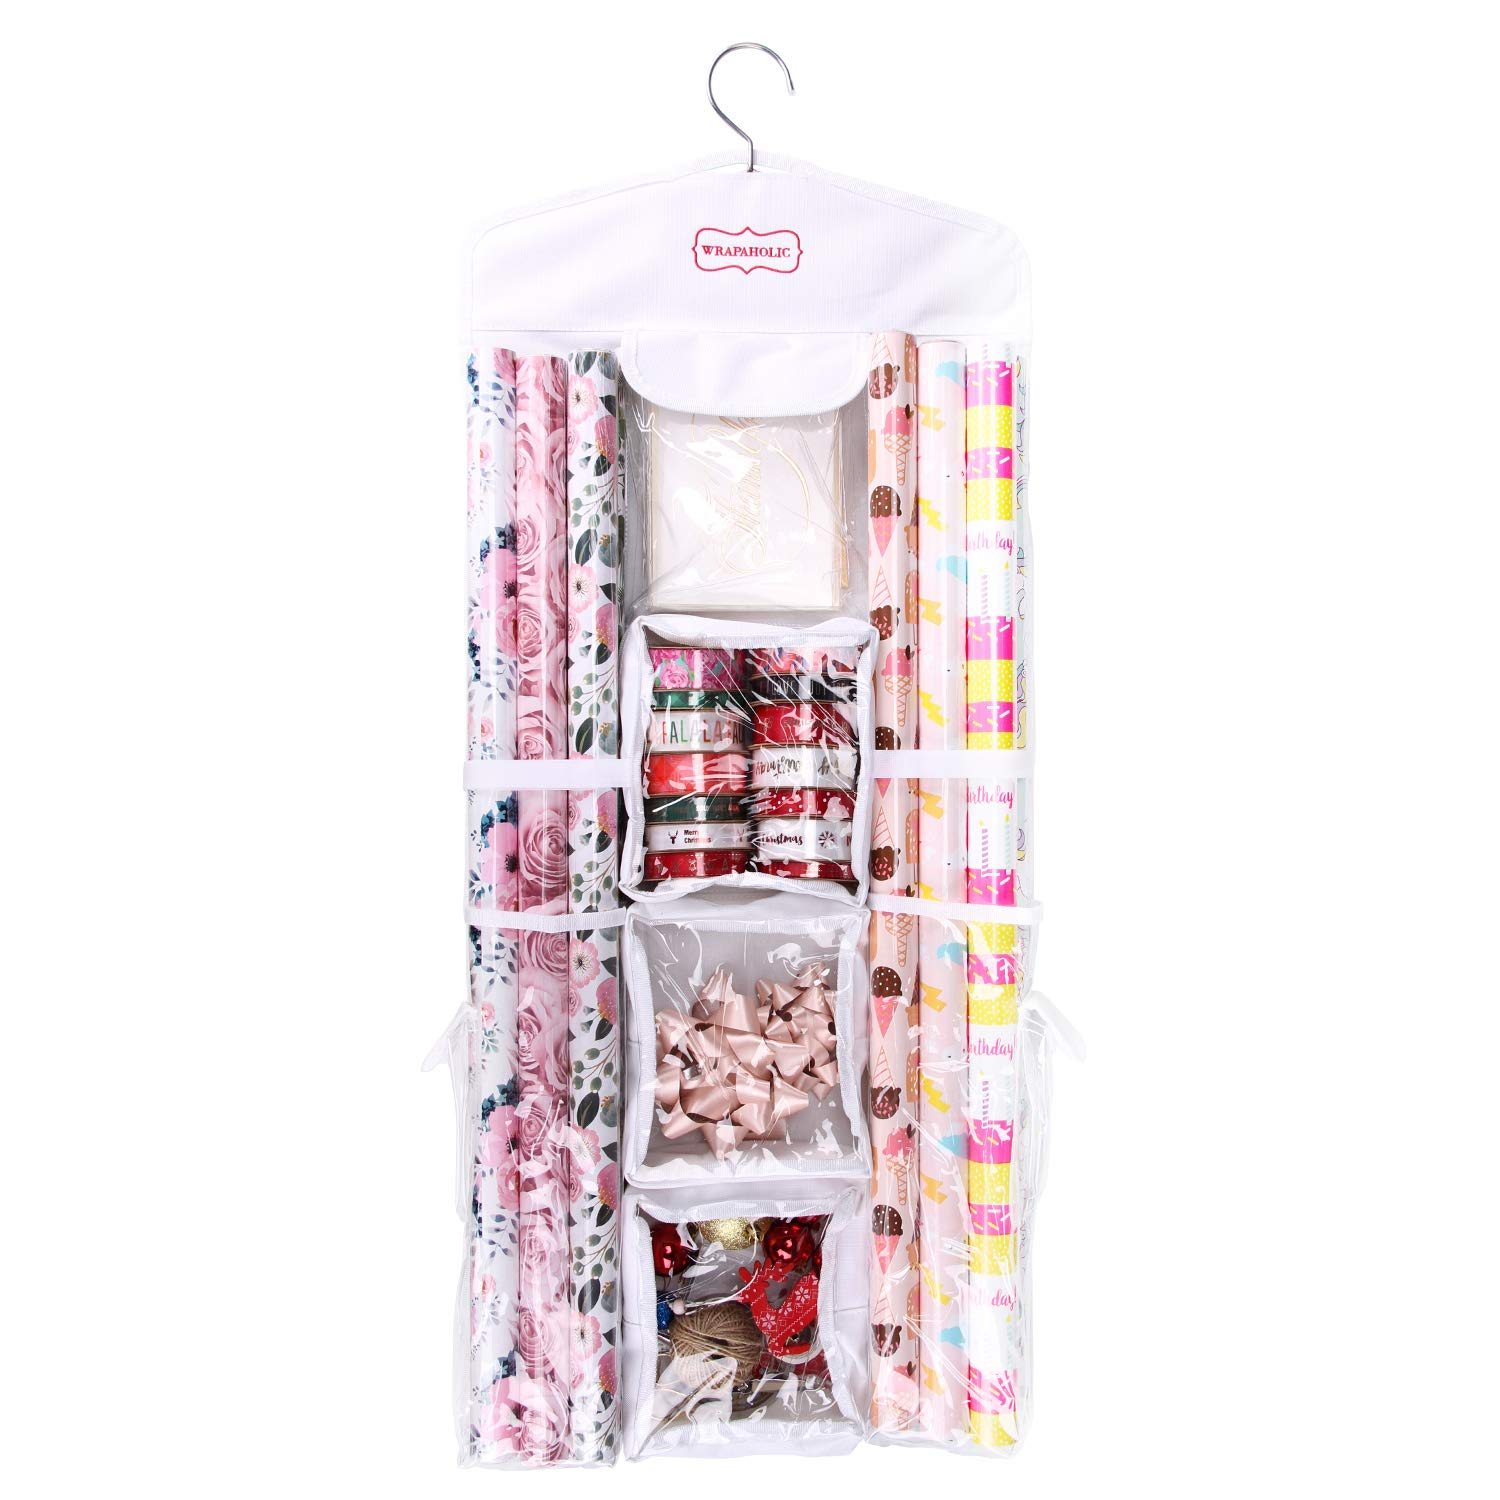 WRAPAHOLIC Hanging Gift Wrap Storage - Double Sided Wrapping Paper Storage Holder for Gift Bags, Bow, Ribbons, Wrapping Paper Rolls by WRAPAHOLIC